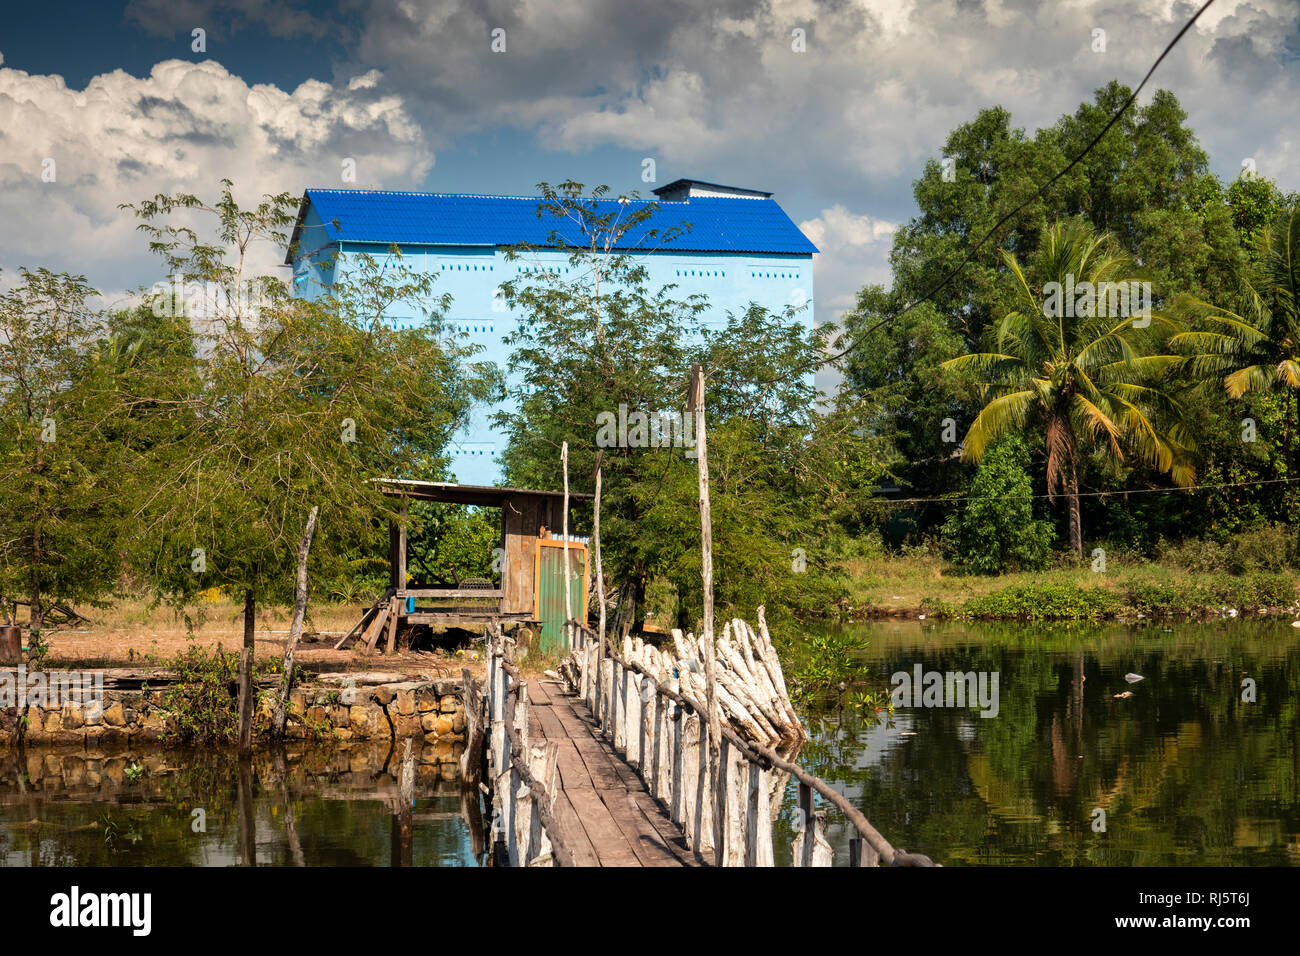 Cambodia, Preah Koh Kong, Krong Khemara Phoumin, building to house birds nest soup swiftlets beside waterway Stock Photo